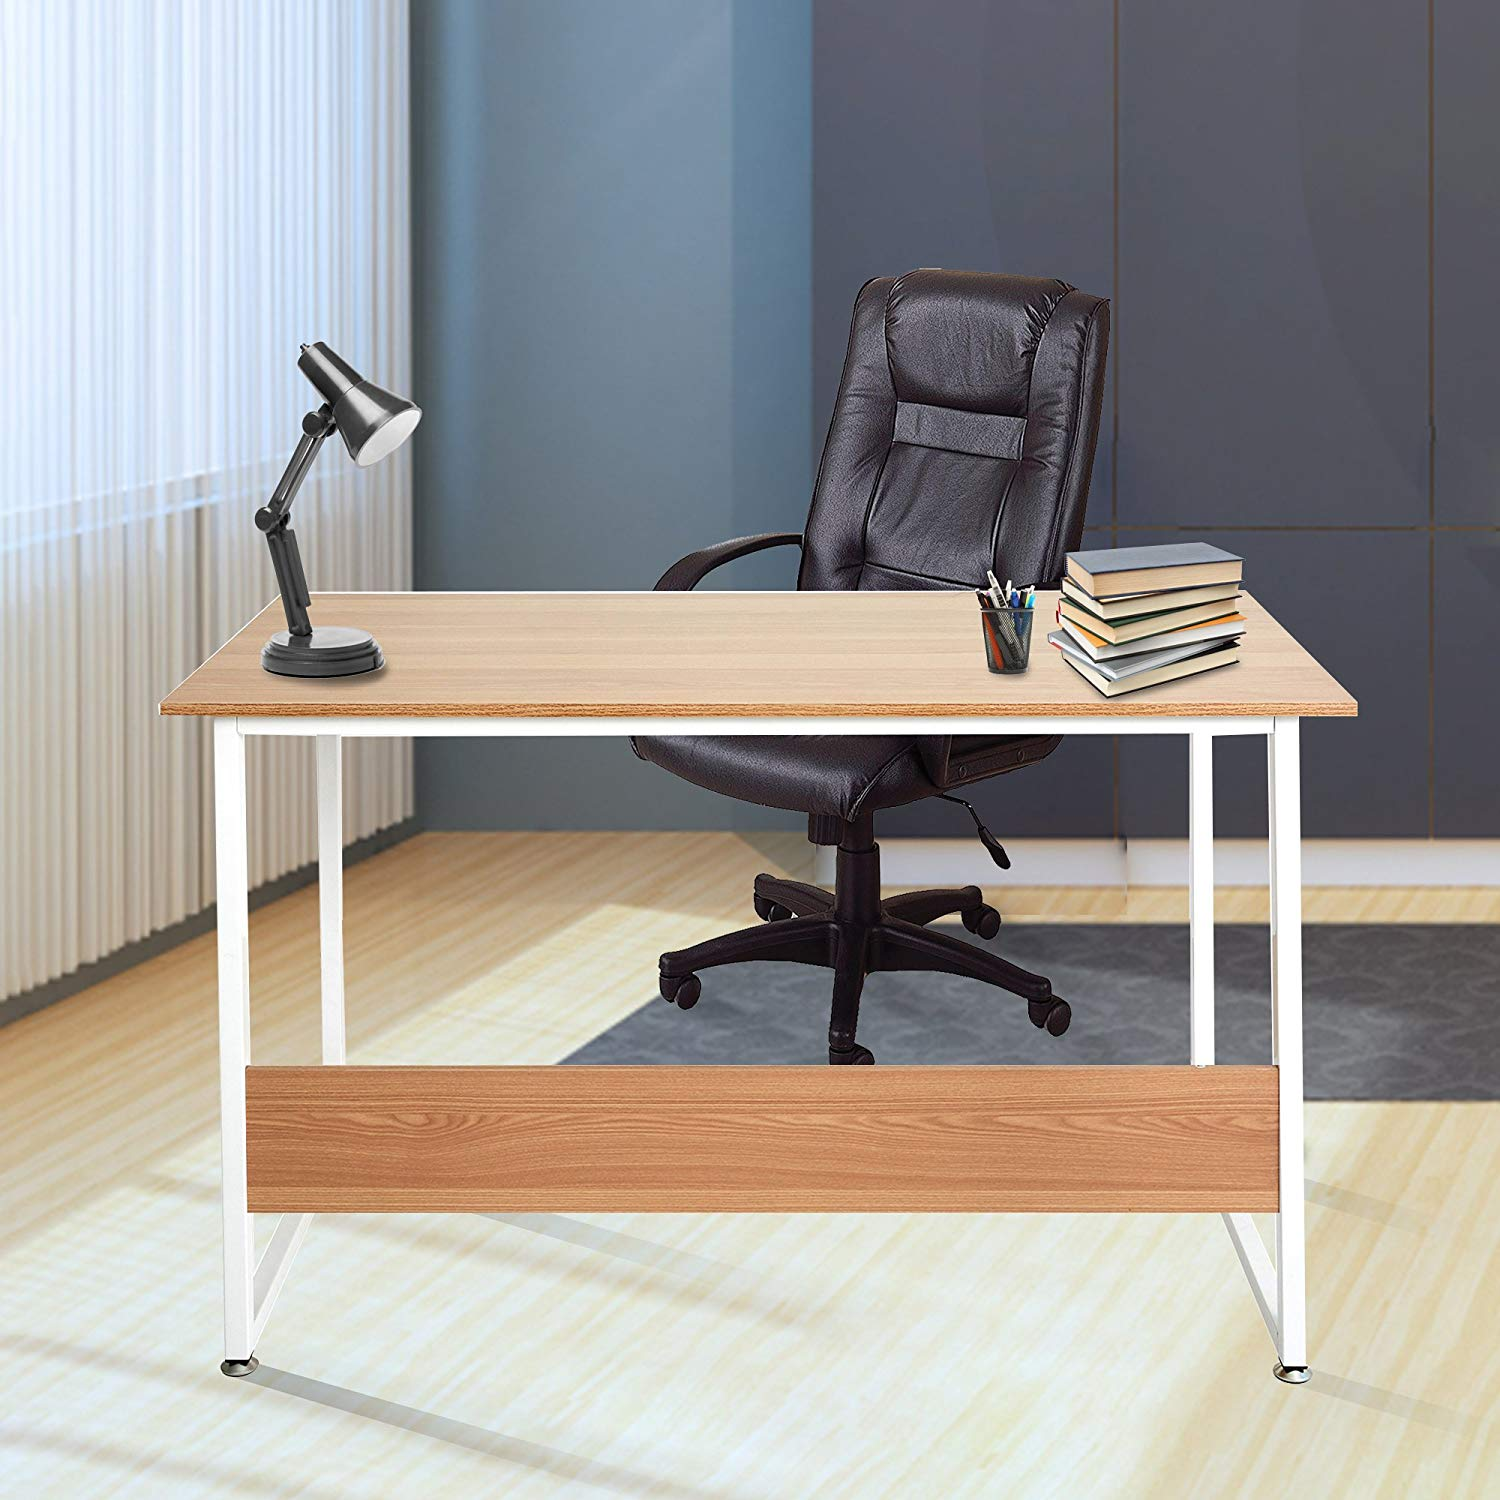 """47"""" Modern Simple Style Home Office Computer Desk,Study Table Writing Desk Workstation Wood PC Laptop Table with Metal Legs,Oak&White"""